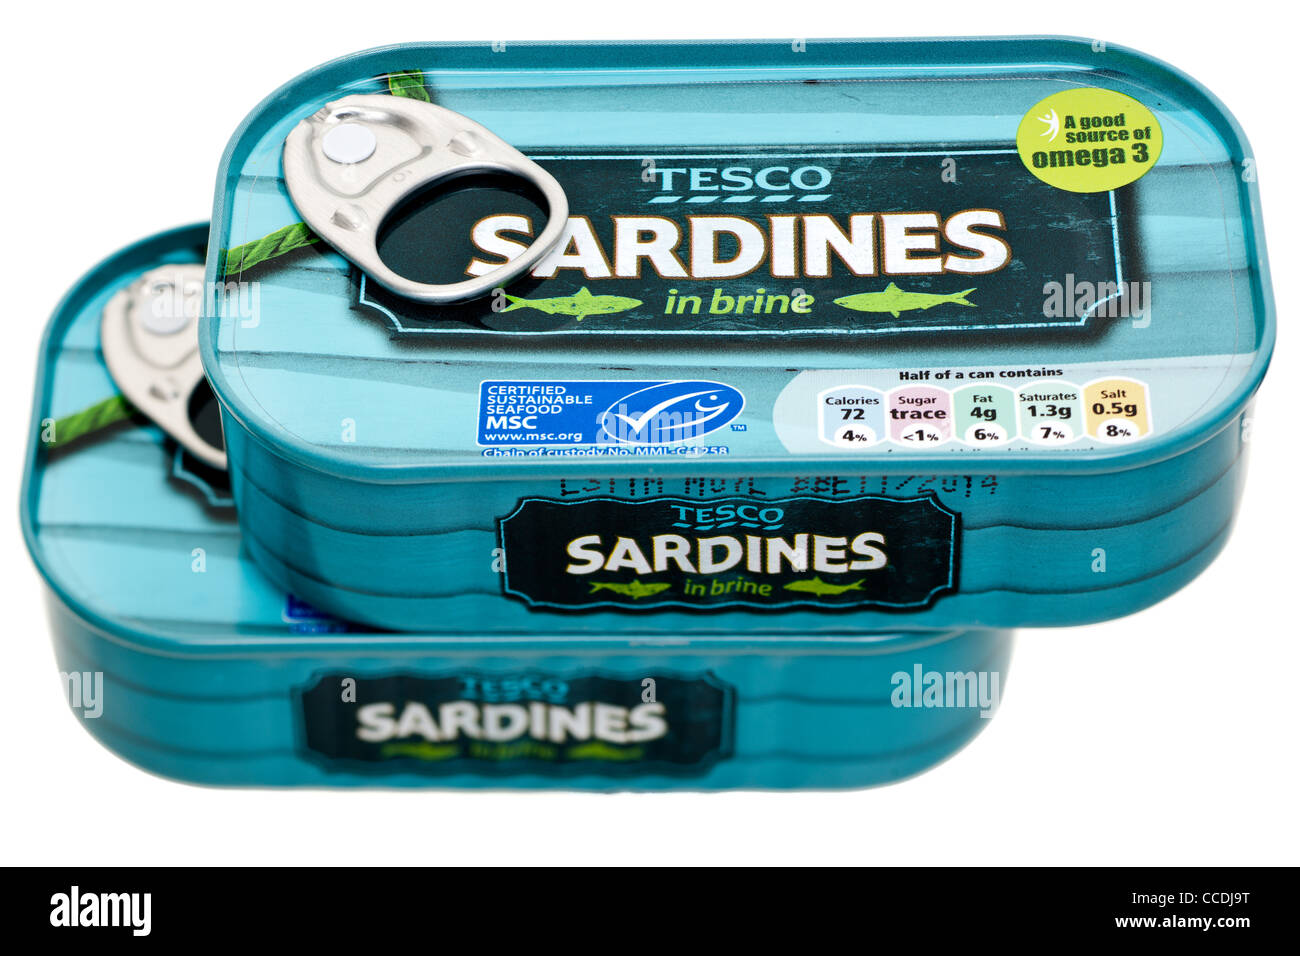 Two tins of Tesco sardines in brine - Stock Image